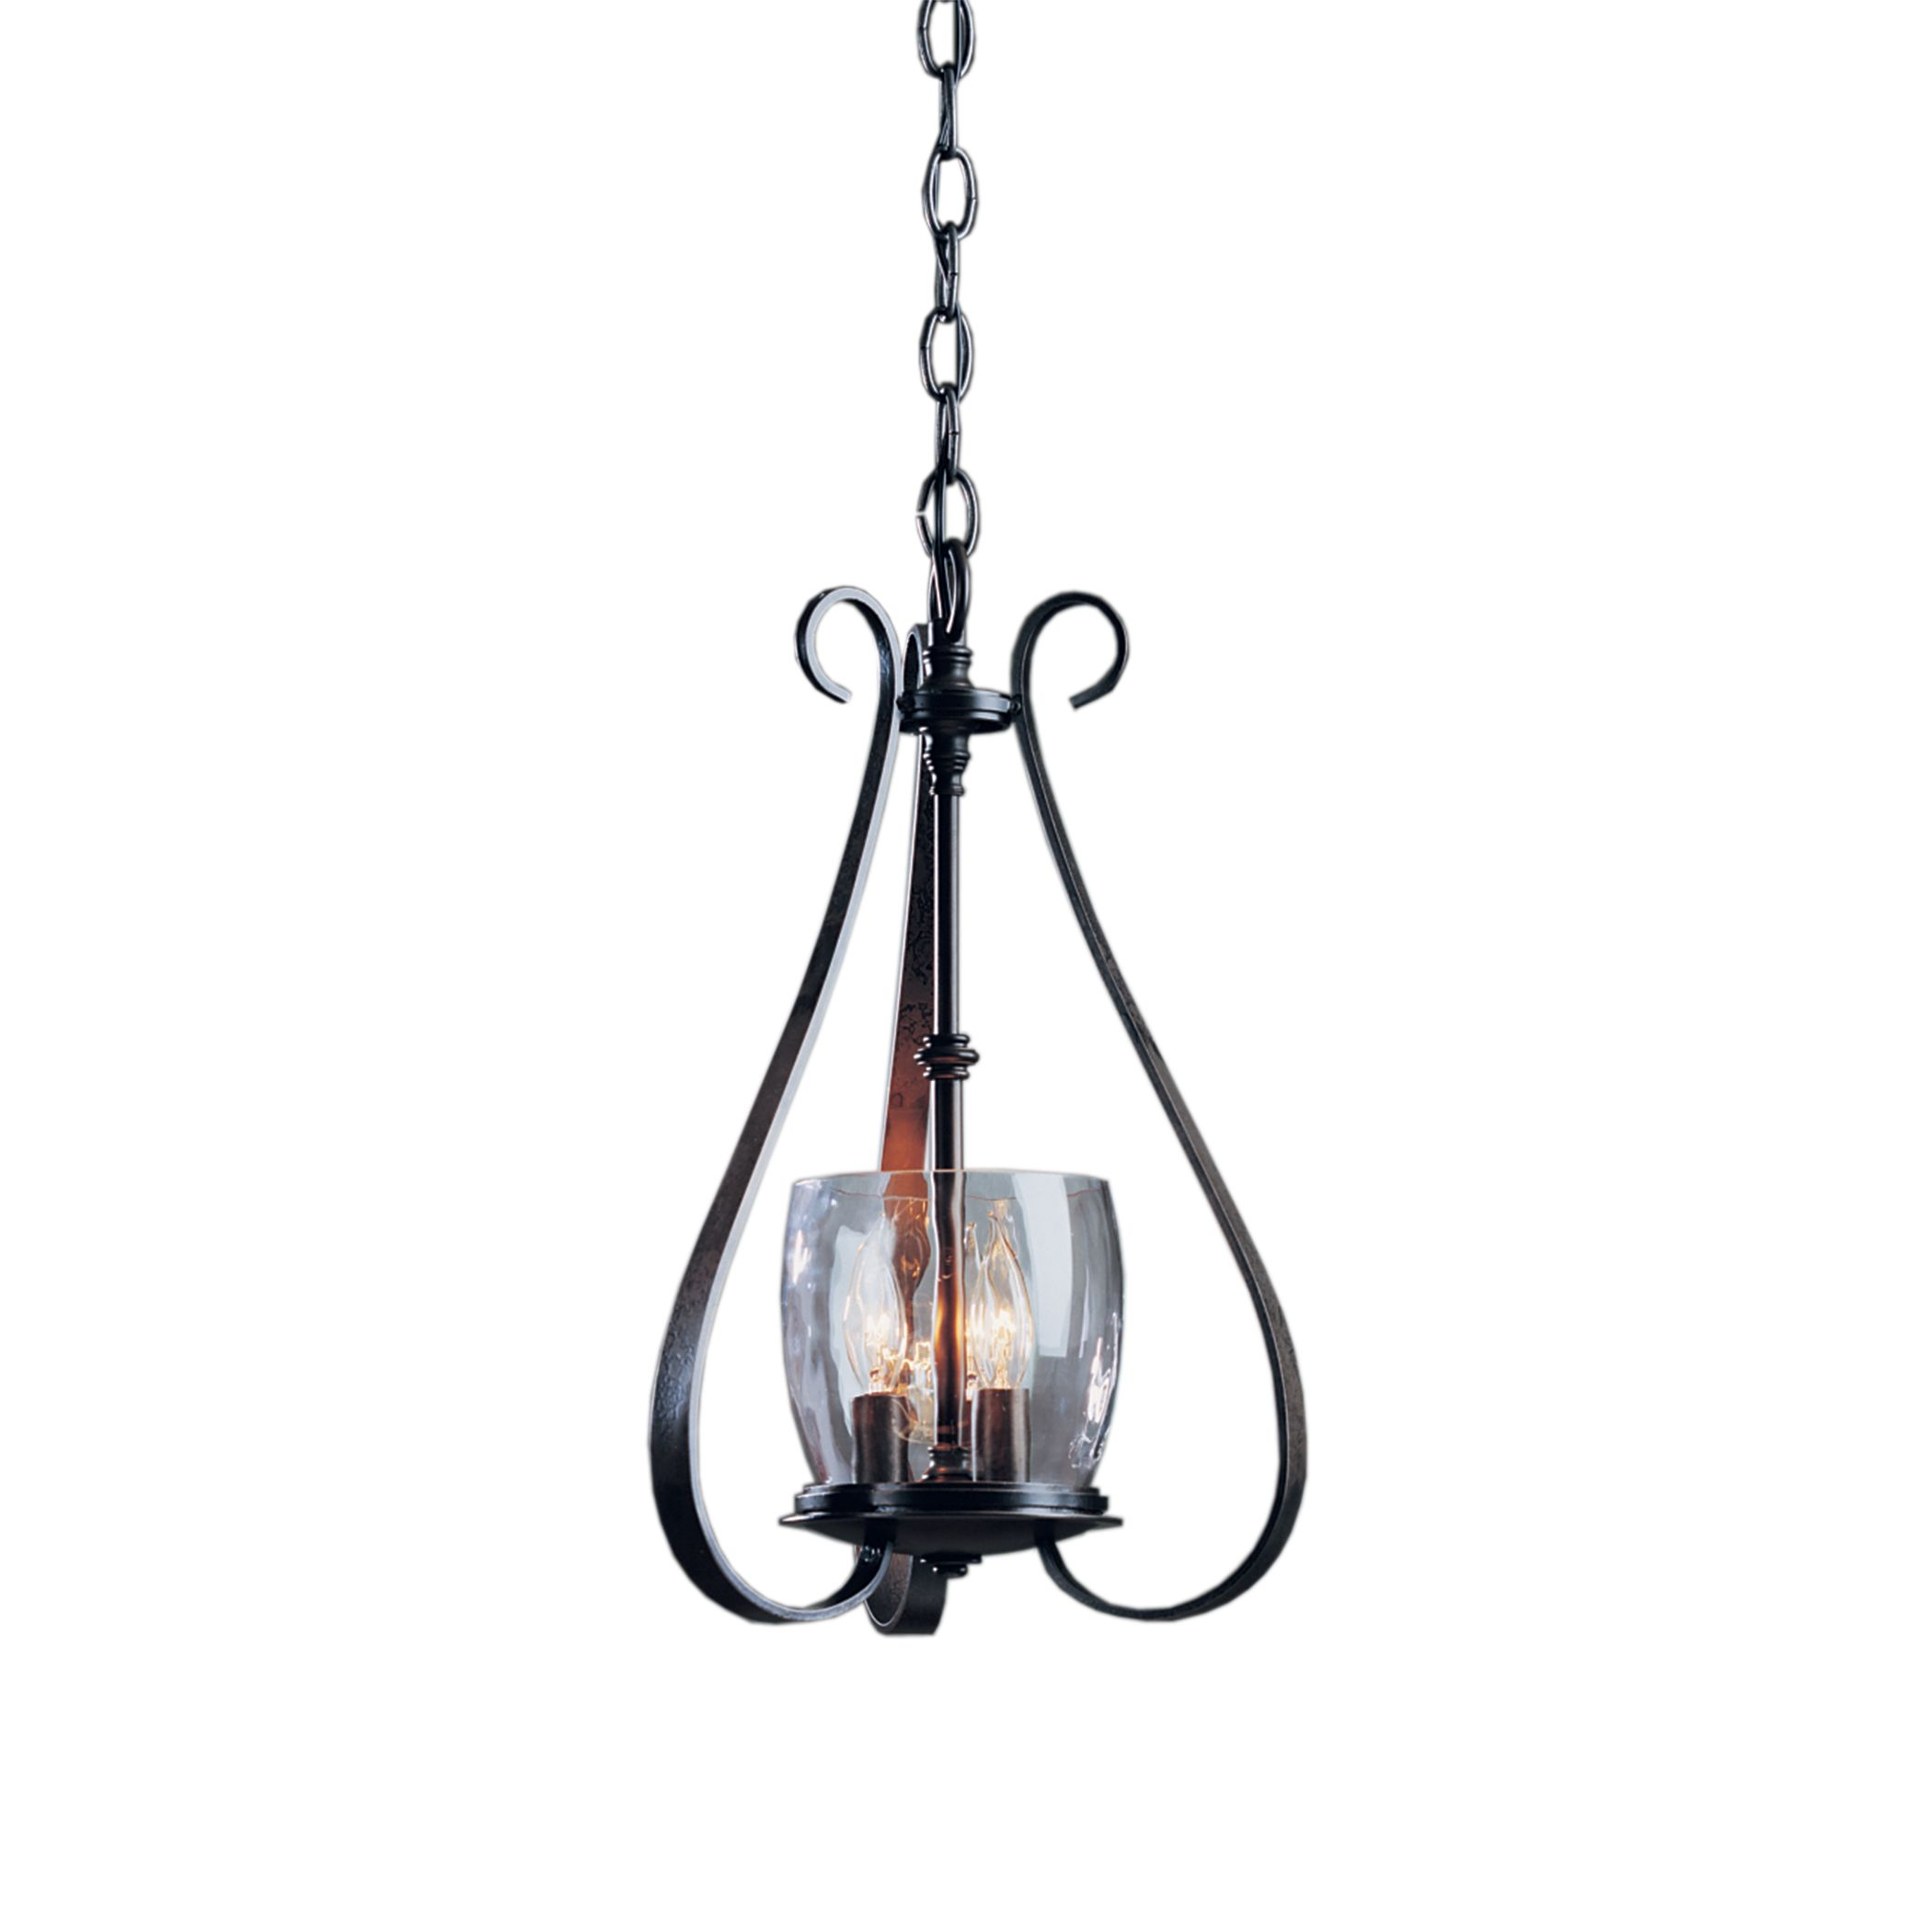 Hubbardton Forge Double Cirque Large: Beacon Hall Chandelier